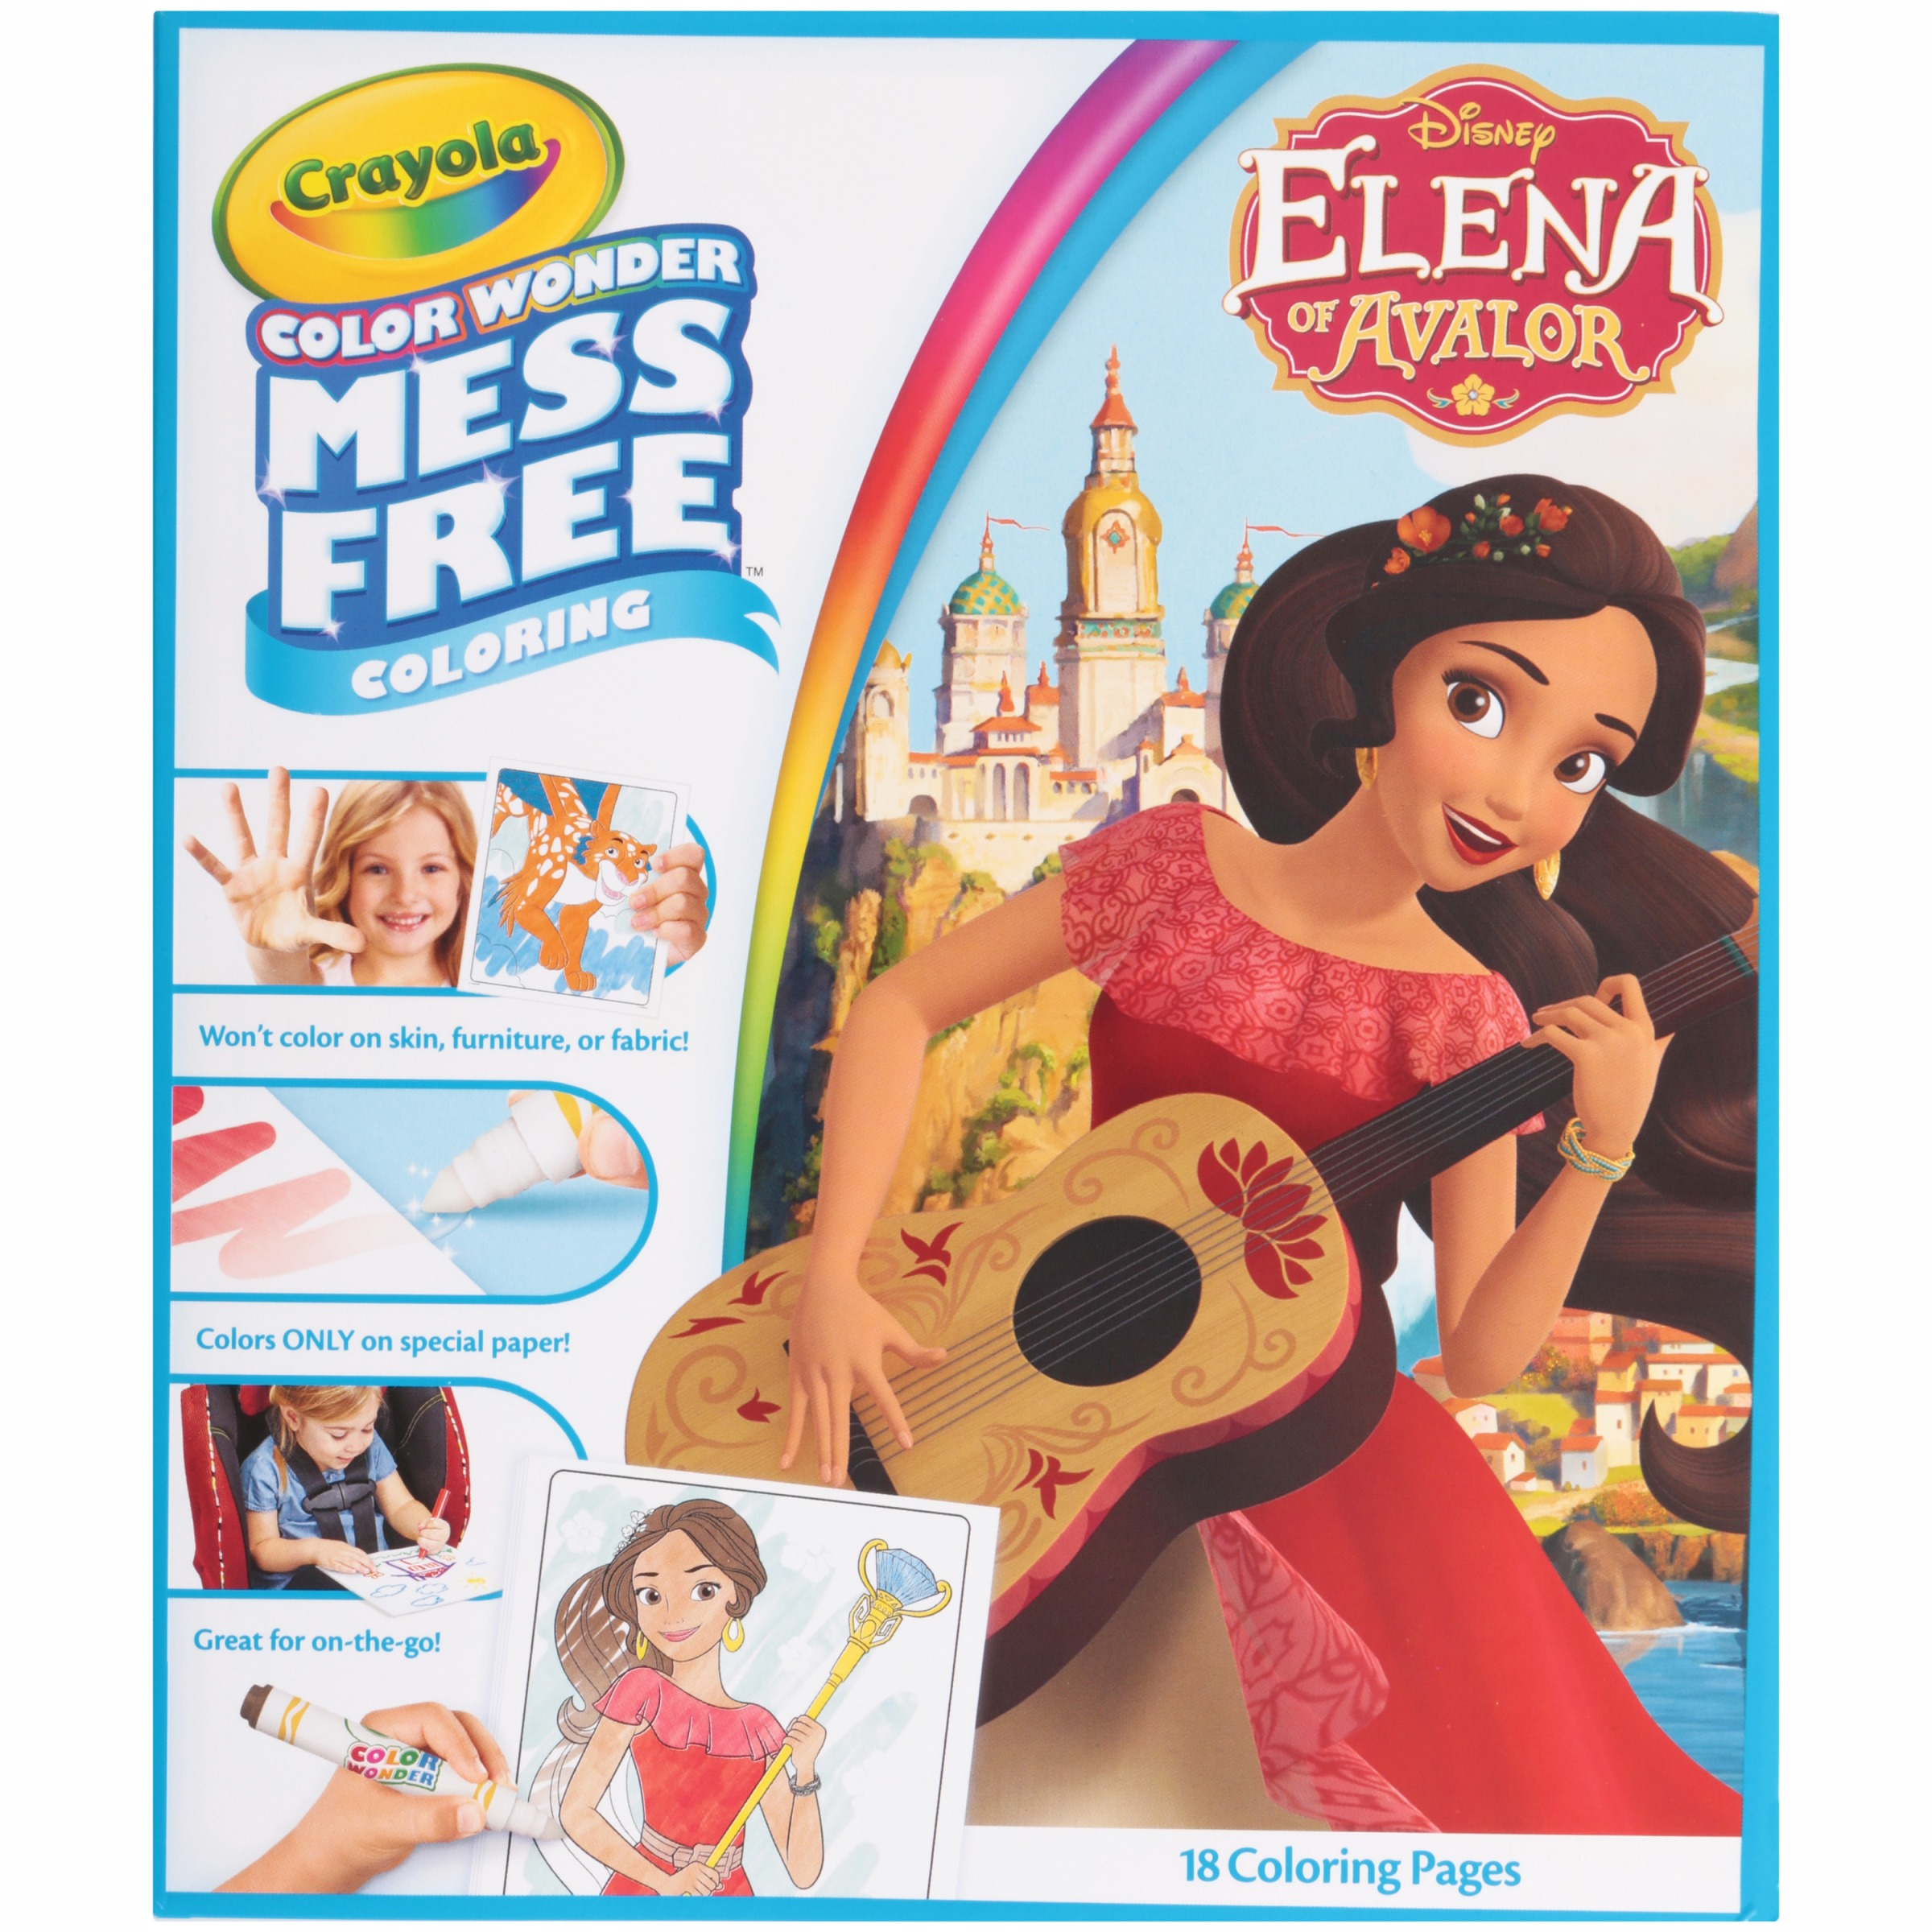 Crayola Disney Elena of Avalor Coloring Pages, 18 Mess Free Color Wonder Pages by Generic